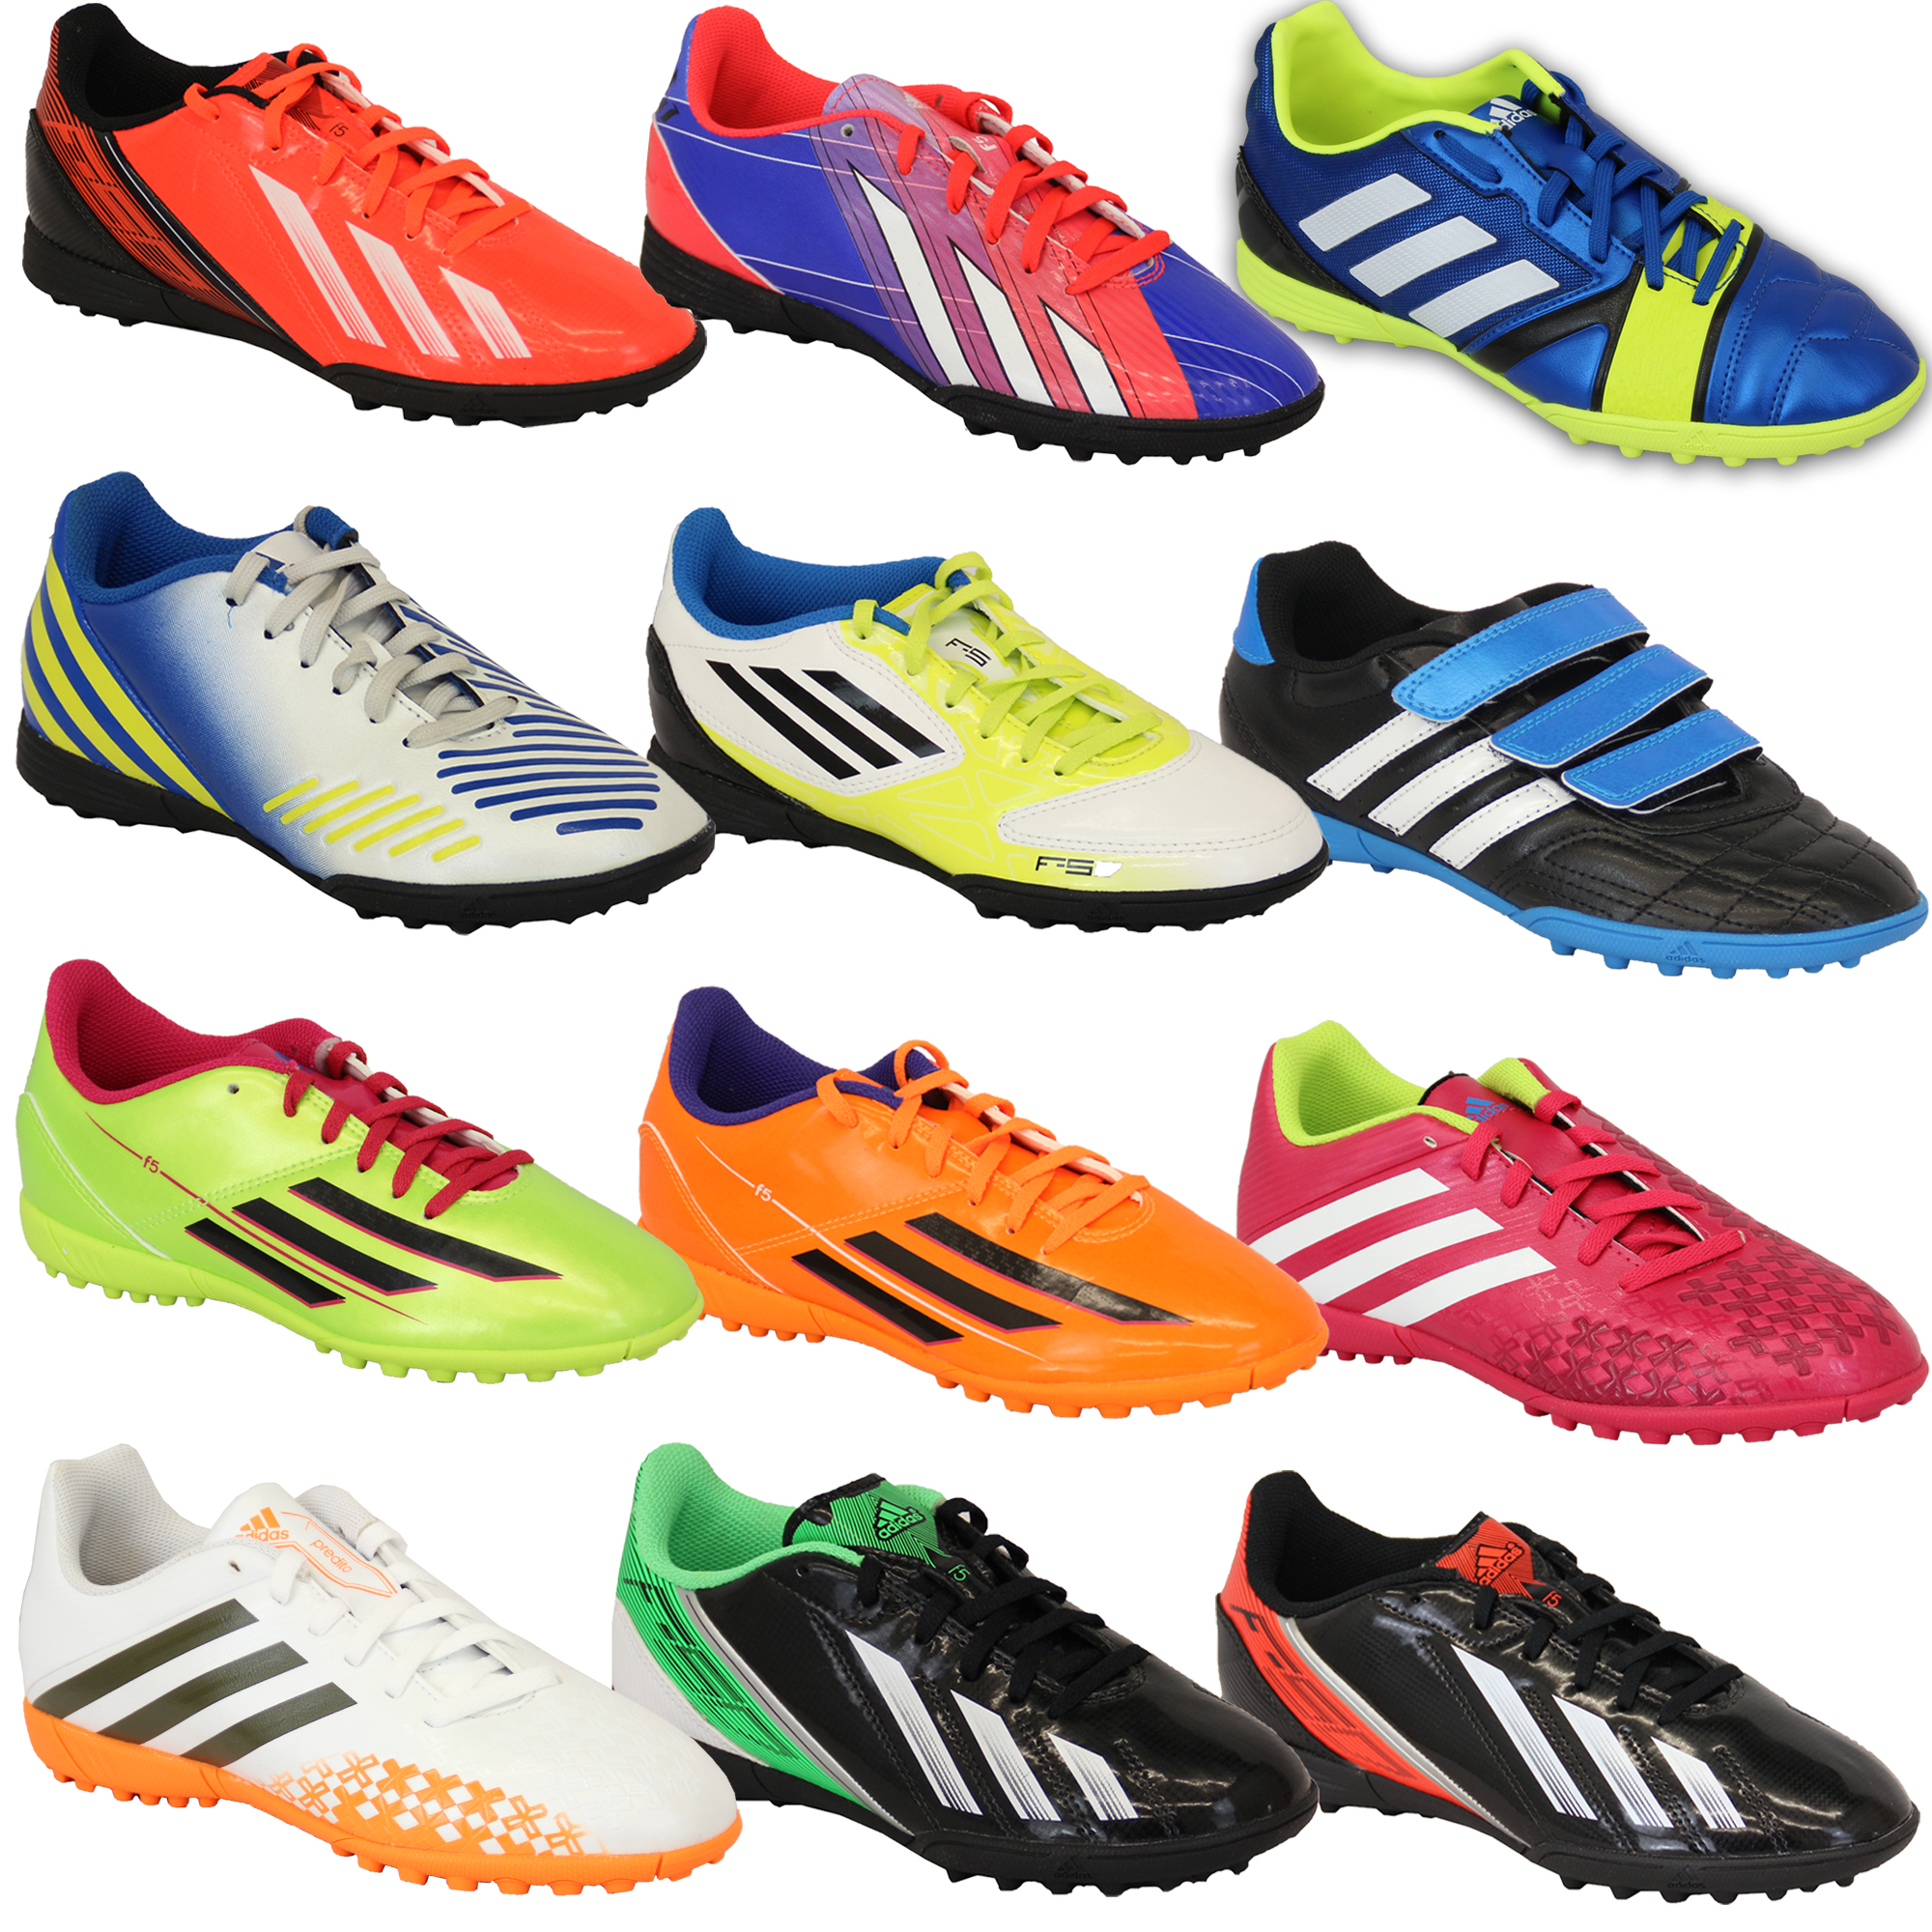 the latest 1db99 94d2d Chicos-Adidas-formadores-Kids-Football-Soccer-Astro-Turf-